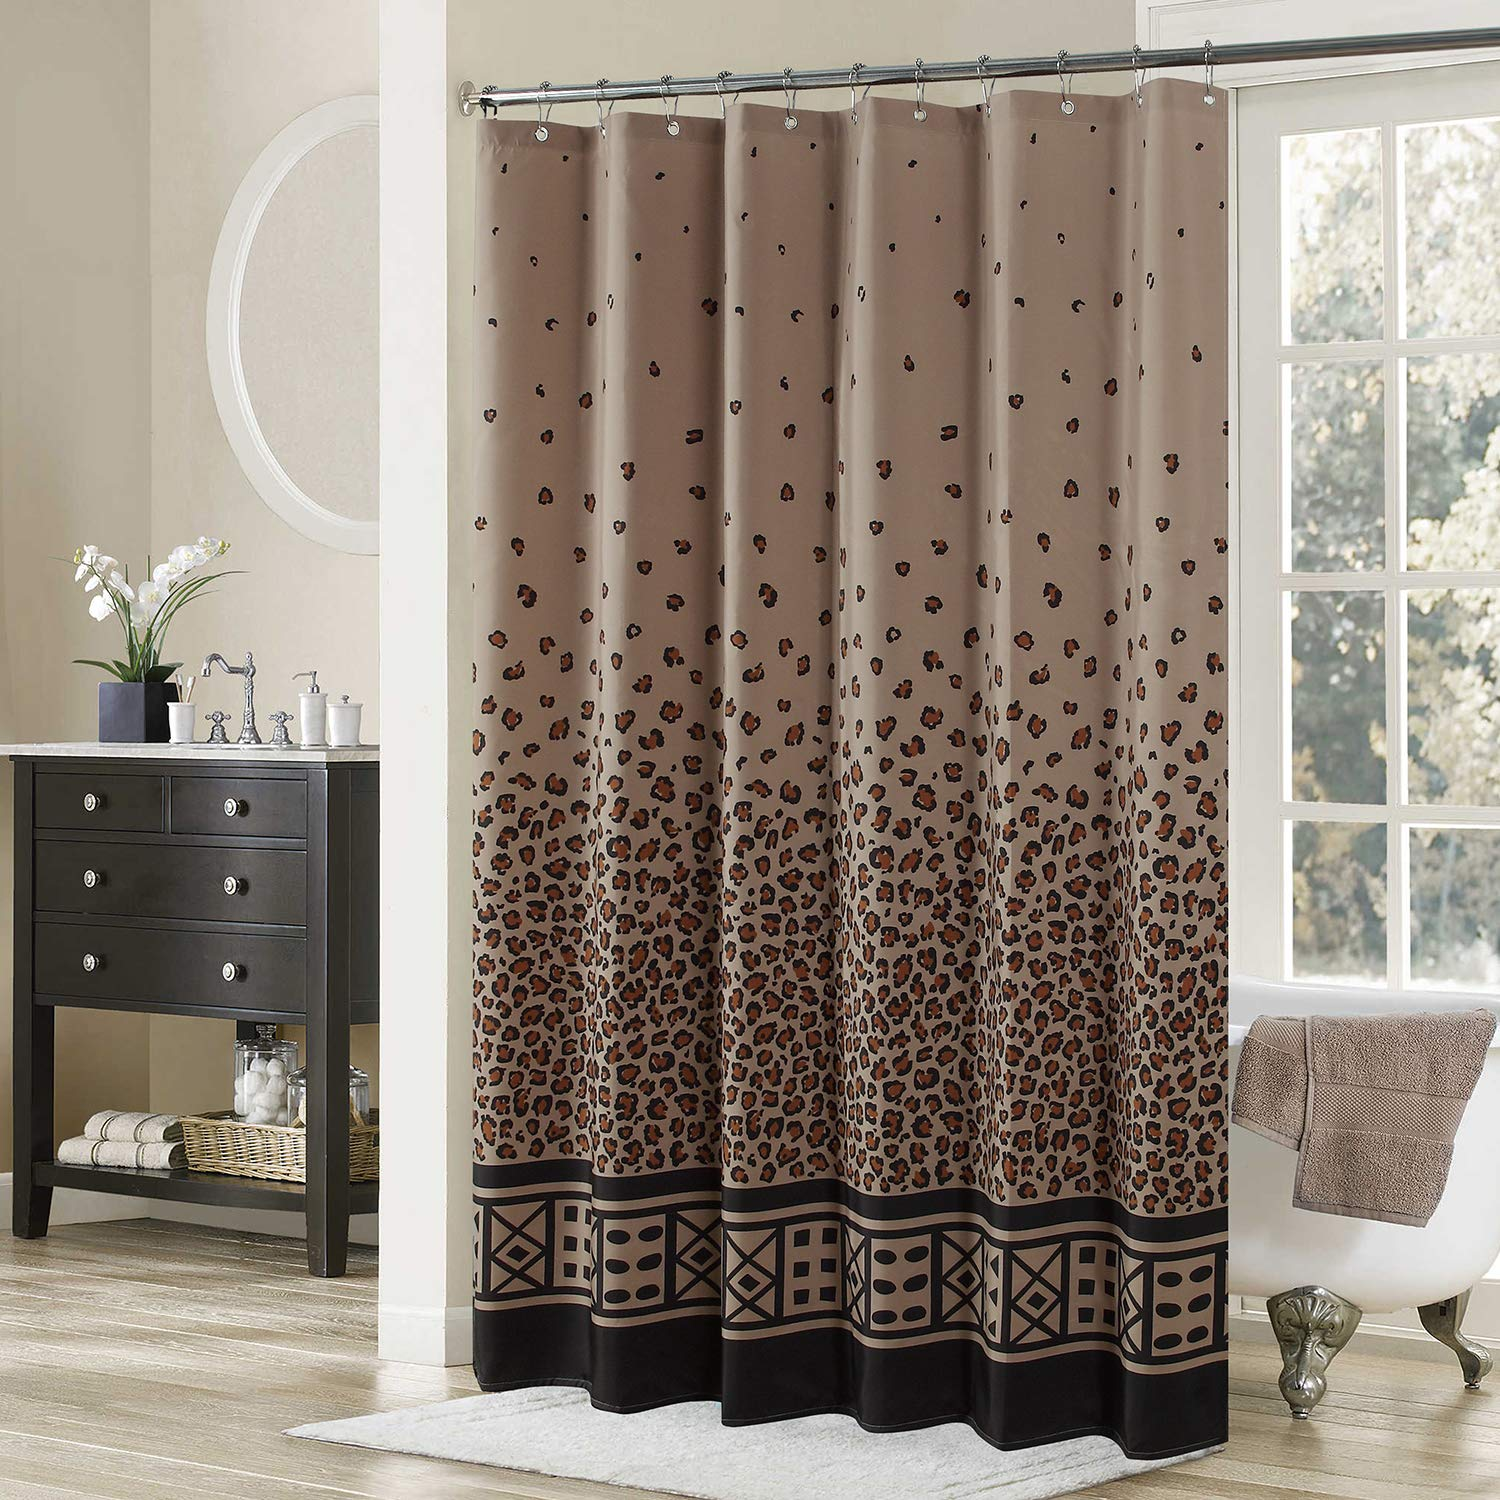 DS BATH Leopard Shower CurtainBlack Fabric CurtainVintage Curtains For BathroomBrown Bathroom CurtainsPrint Waterproof Curtain78